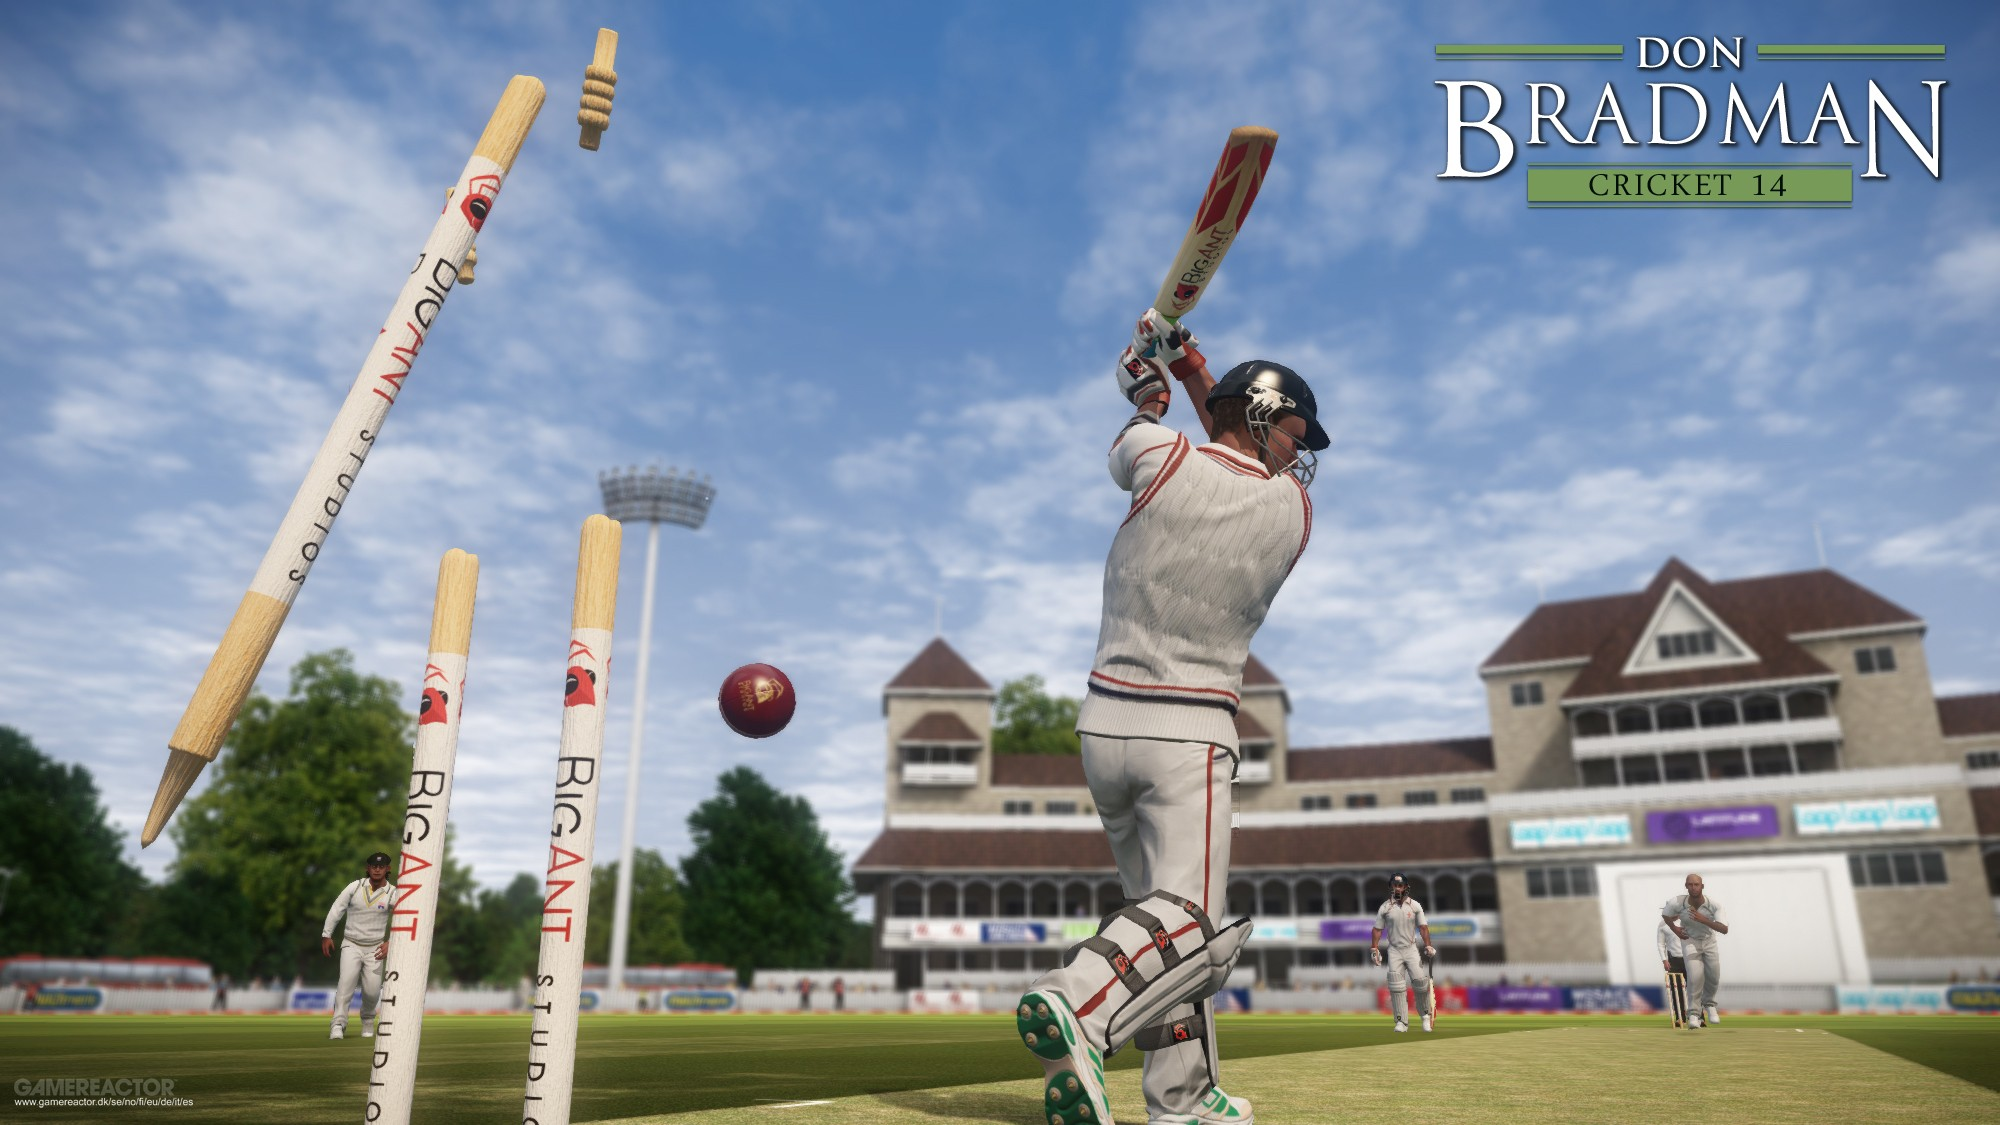 Don Bradman Cricket '14 is now Available on Xbox One, PS4, PS3, 360 and PC.